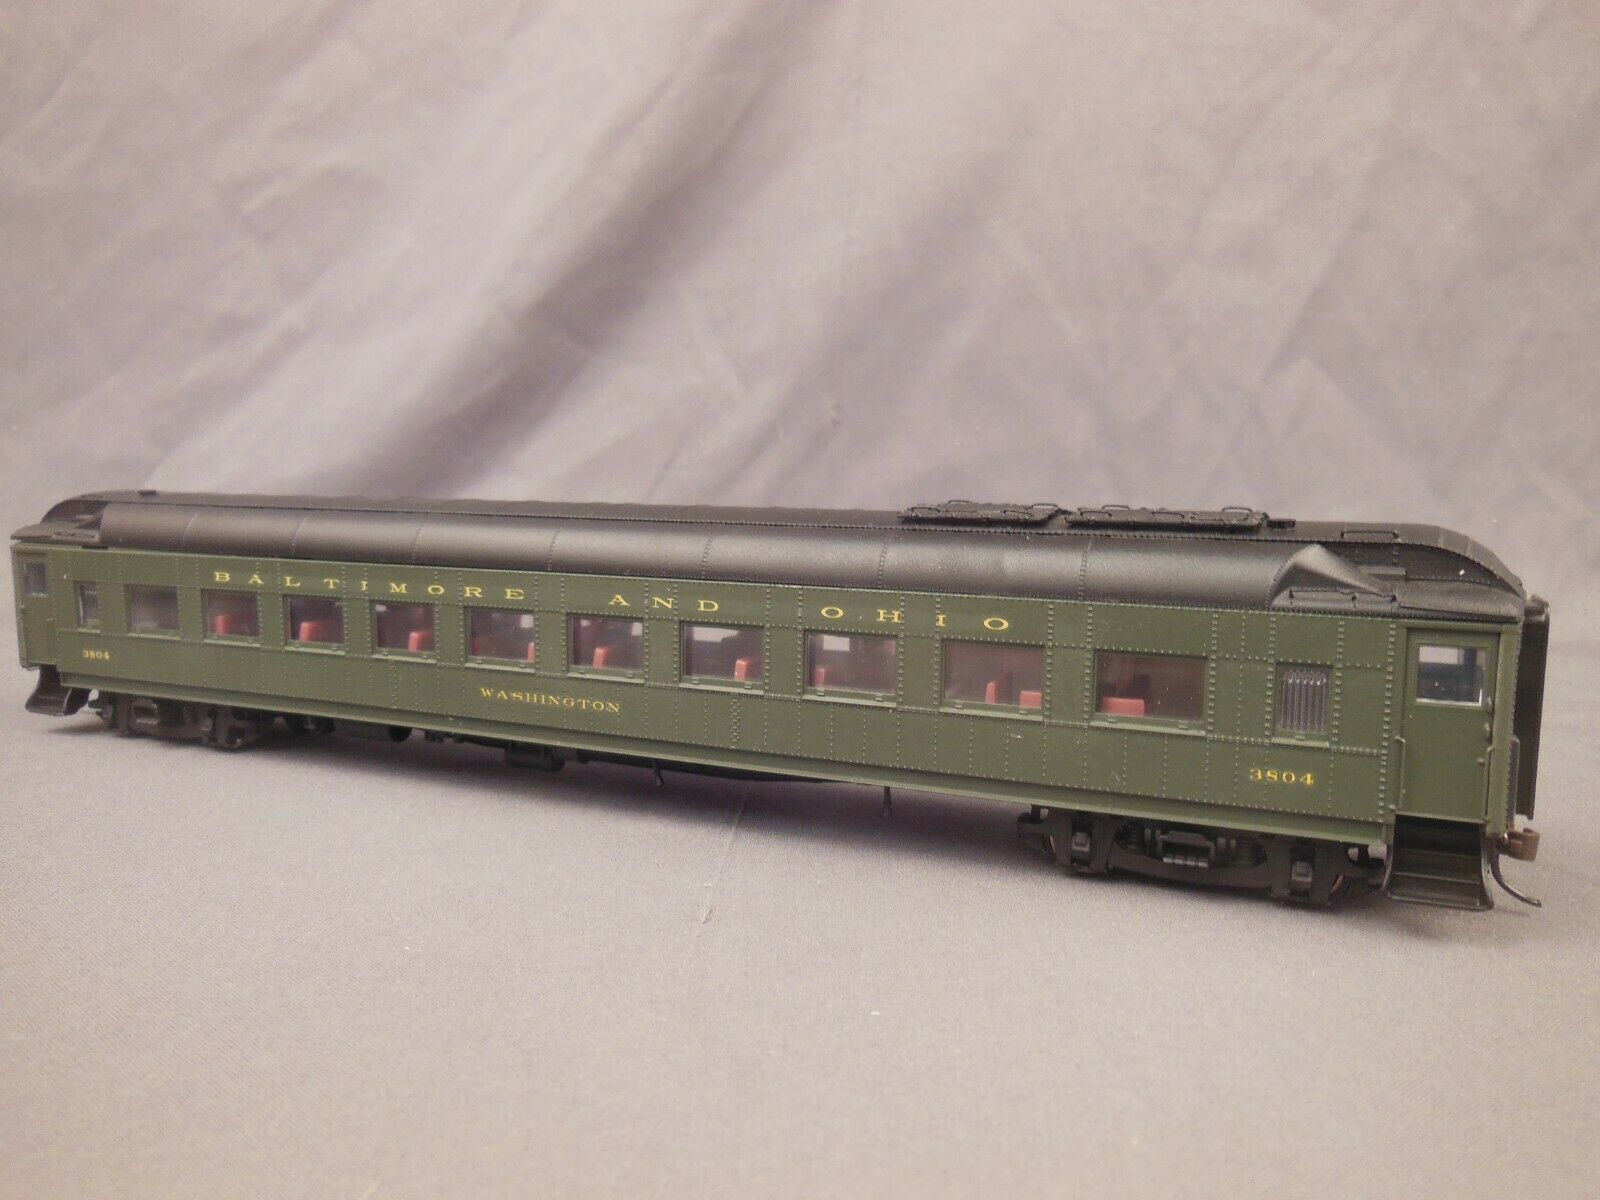 HO SCALE WALTHERS BALTIMORE & OHIO CHAIR CAR W INTERIOR PASSENGERS LIGHTING